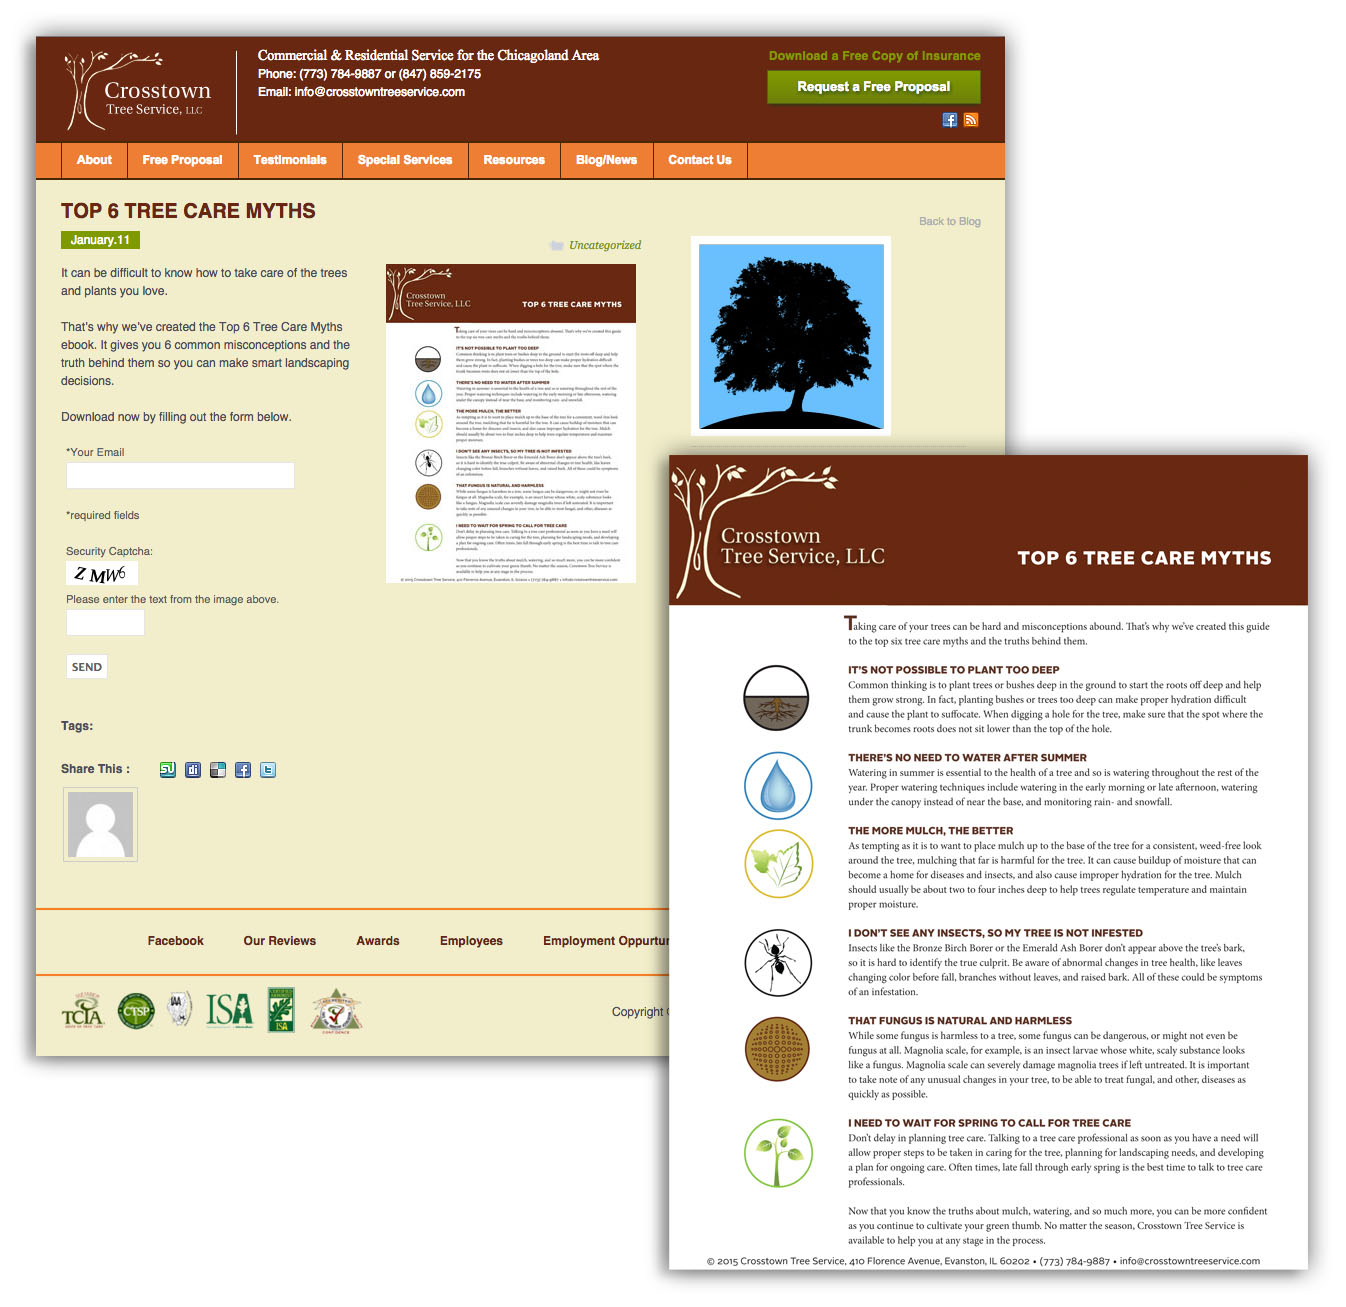 Top 6 Tree Care Myths eBook and Landing Page